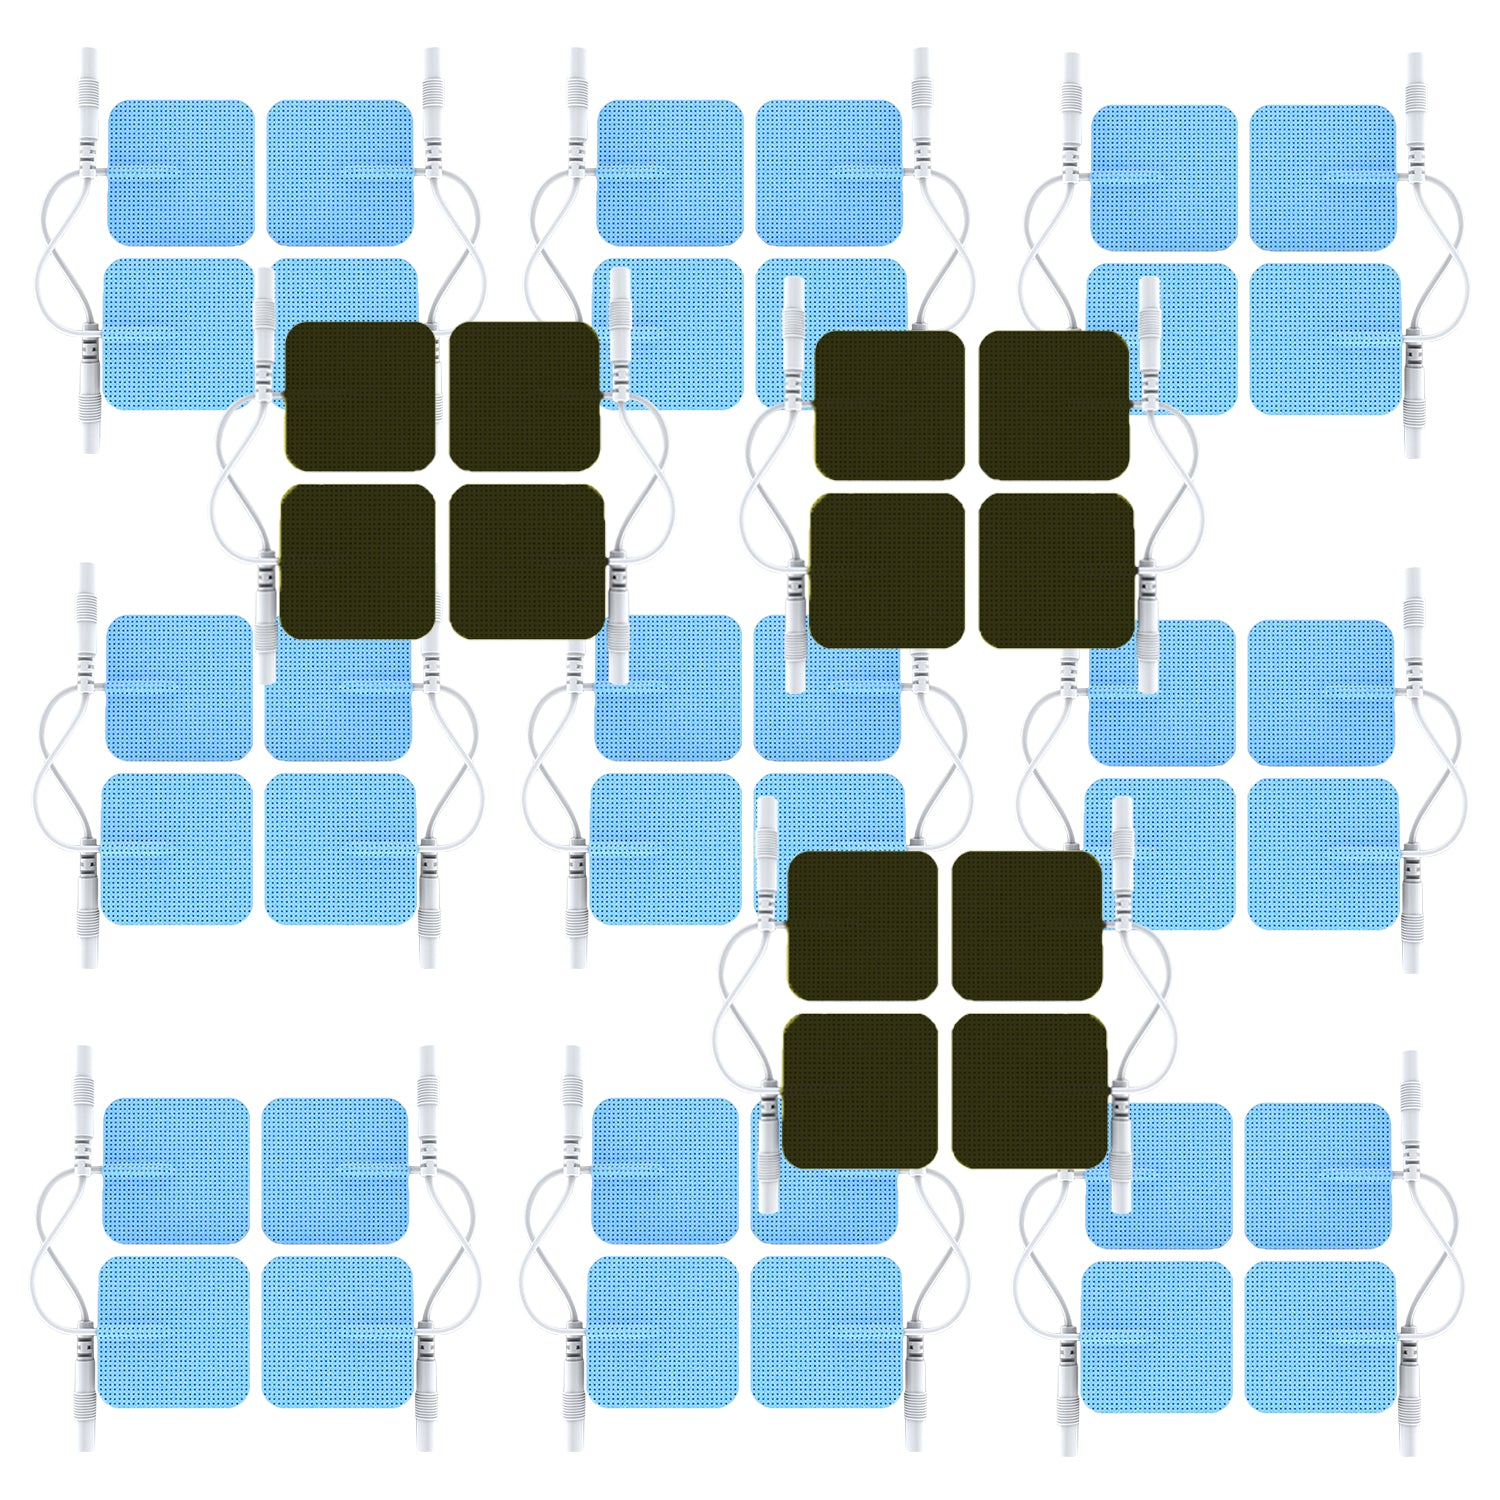 12 Sets (48 Pcs) Pin-Insert Square Electrode Patches Pads  for YK15AB | YK15RC | CT15AB | ZT15AB +CT60AB | ZT60AB Pain Relief TENS Machines Muscle Stimulators - HealthmateForever